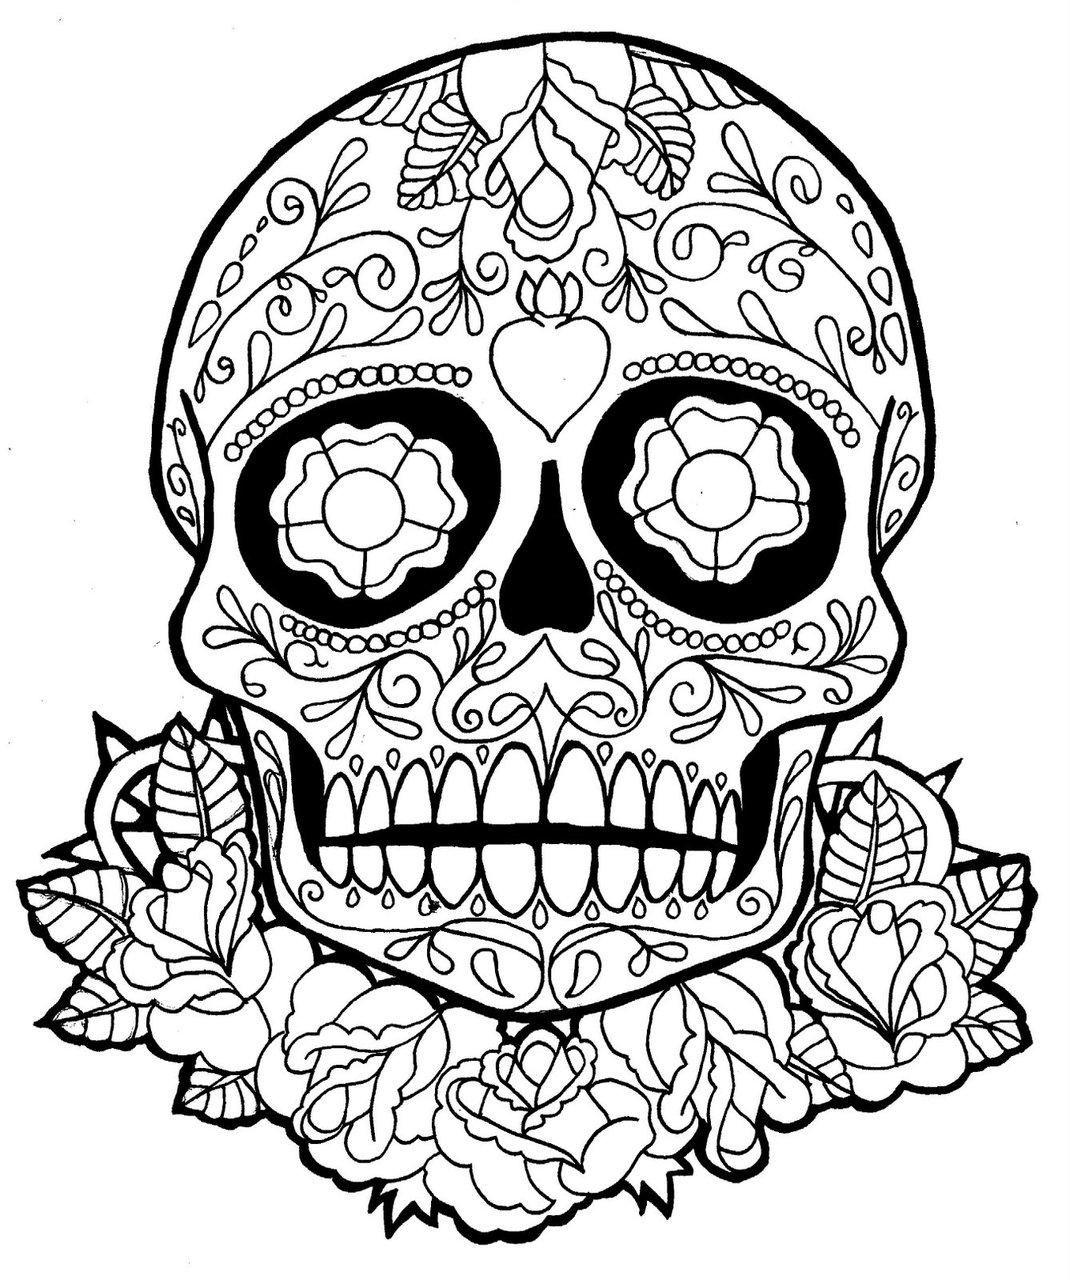 day of dead coloring pages free printable day of the dead coloring pages best dead coloring day pages of